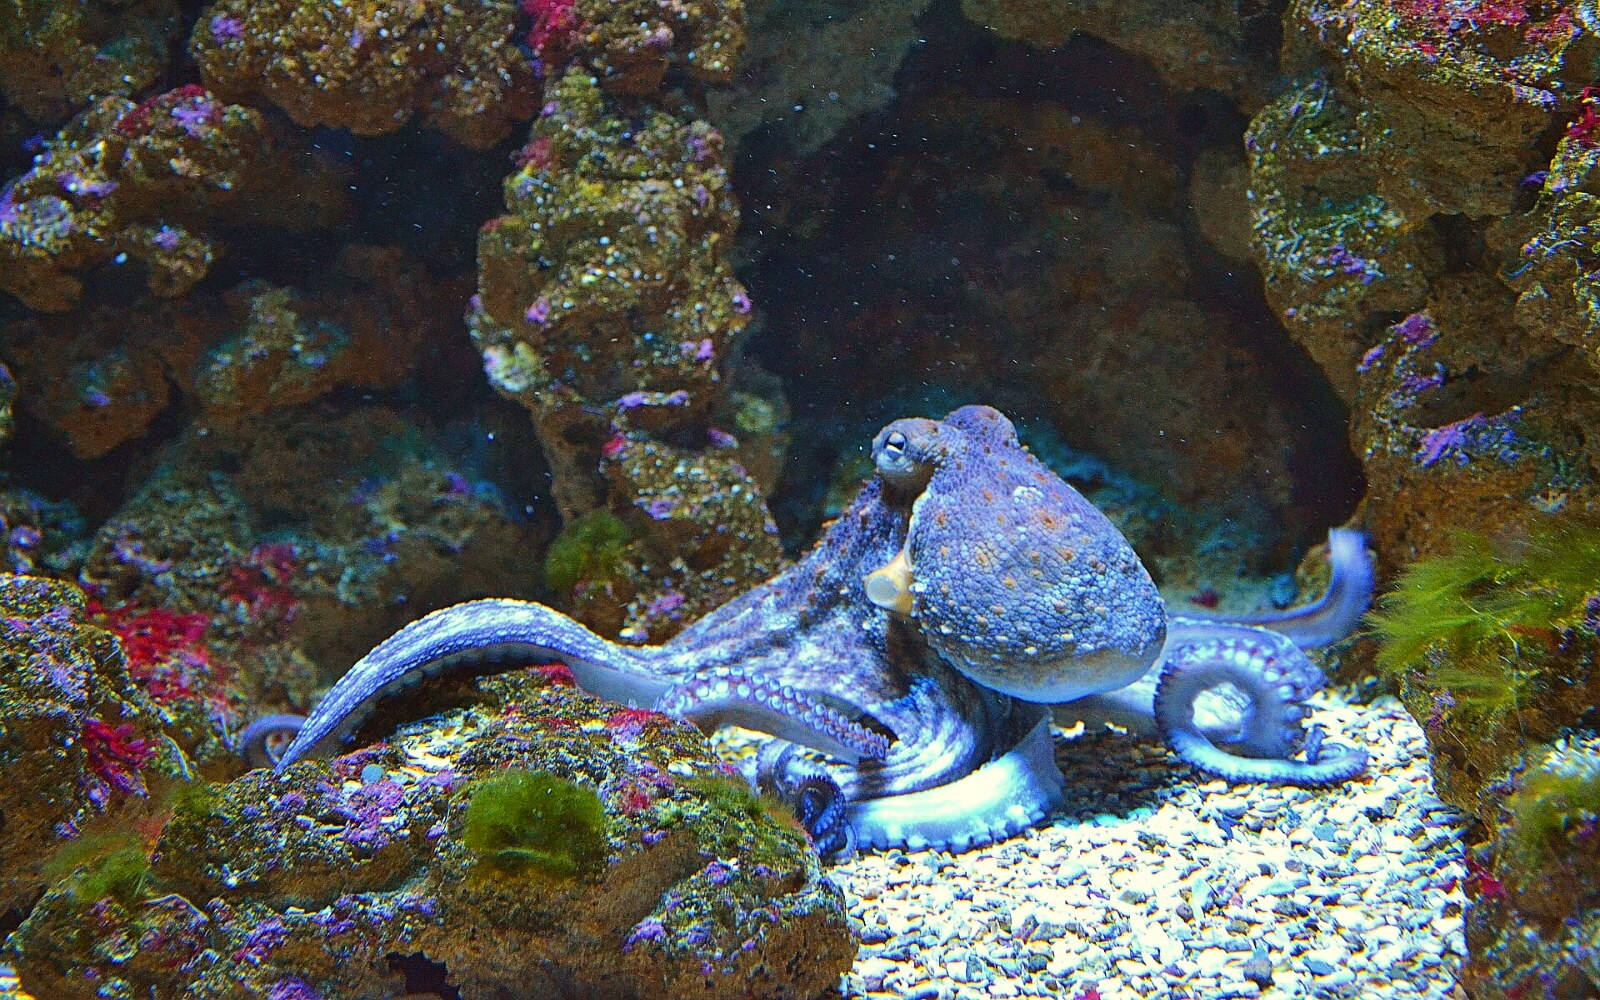 An Octopus in an Aquarium